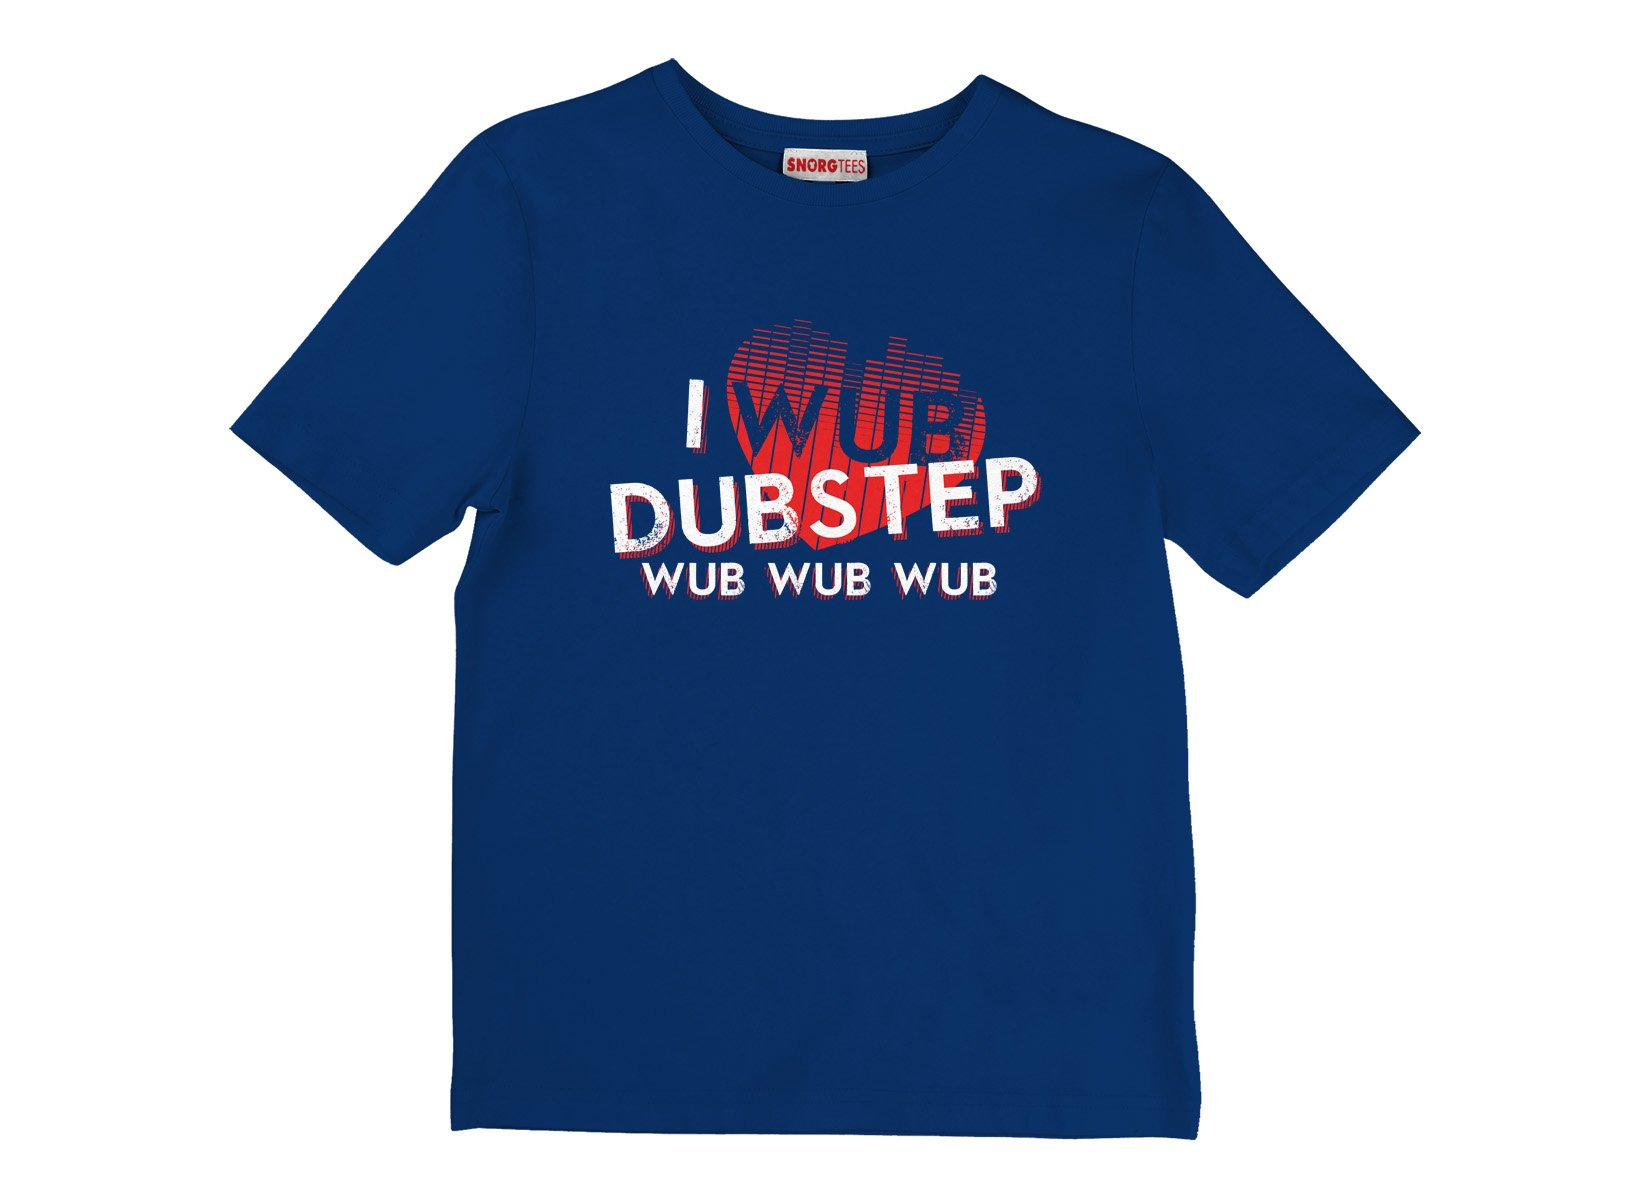 I Wub Dubstep on Kids T-Shirt